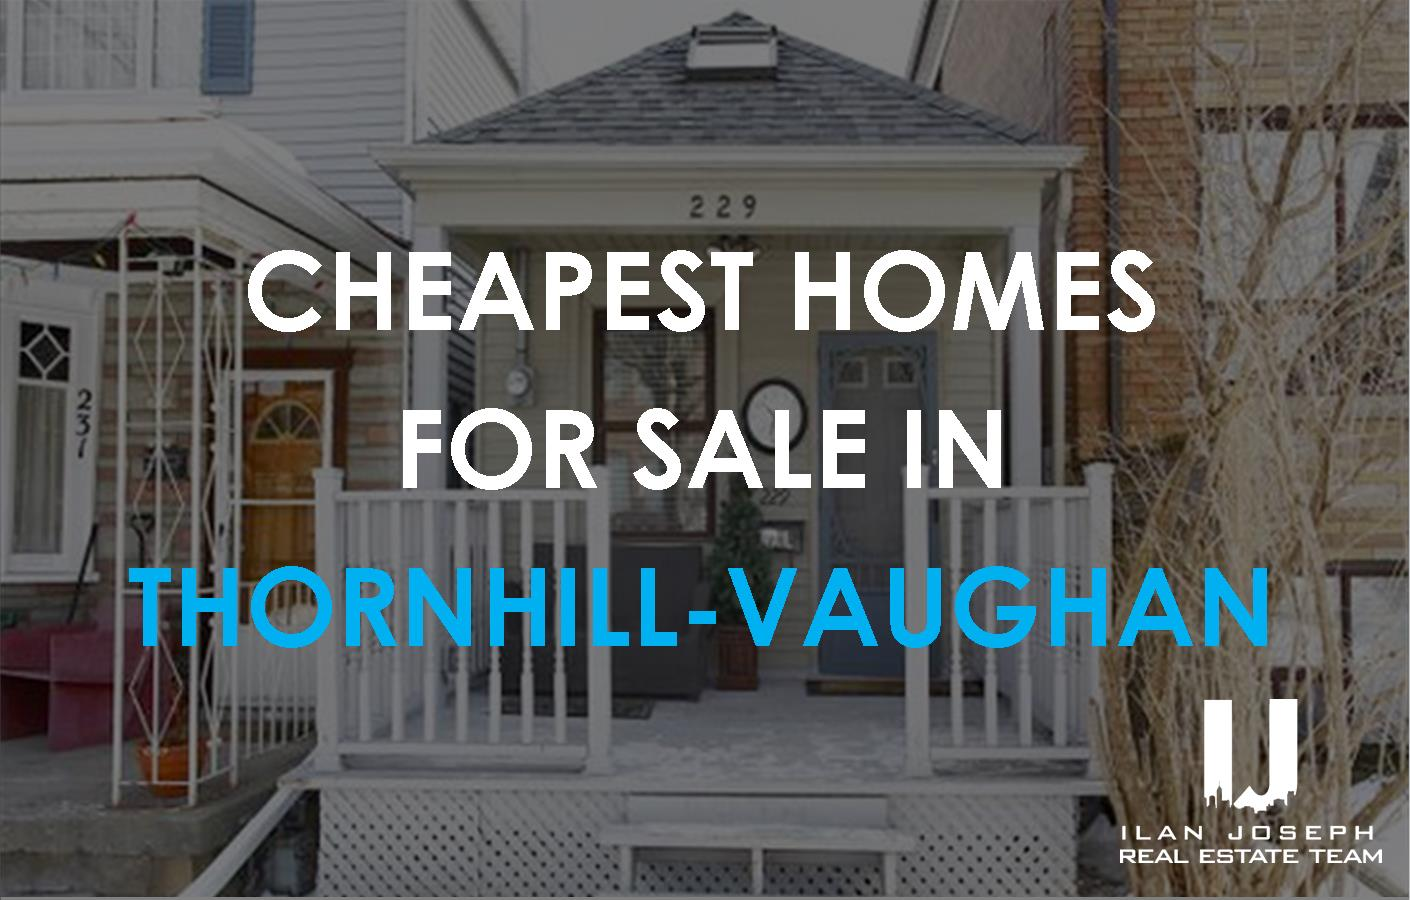 the 10 lowest priced homes for sale in thornhill vaughan